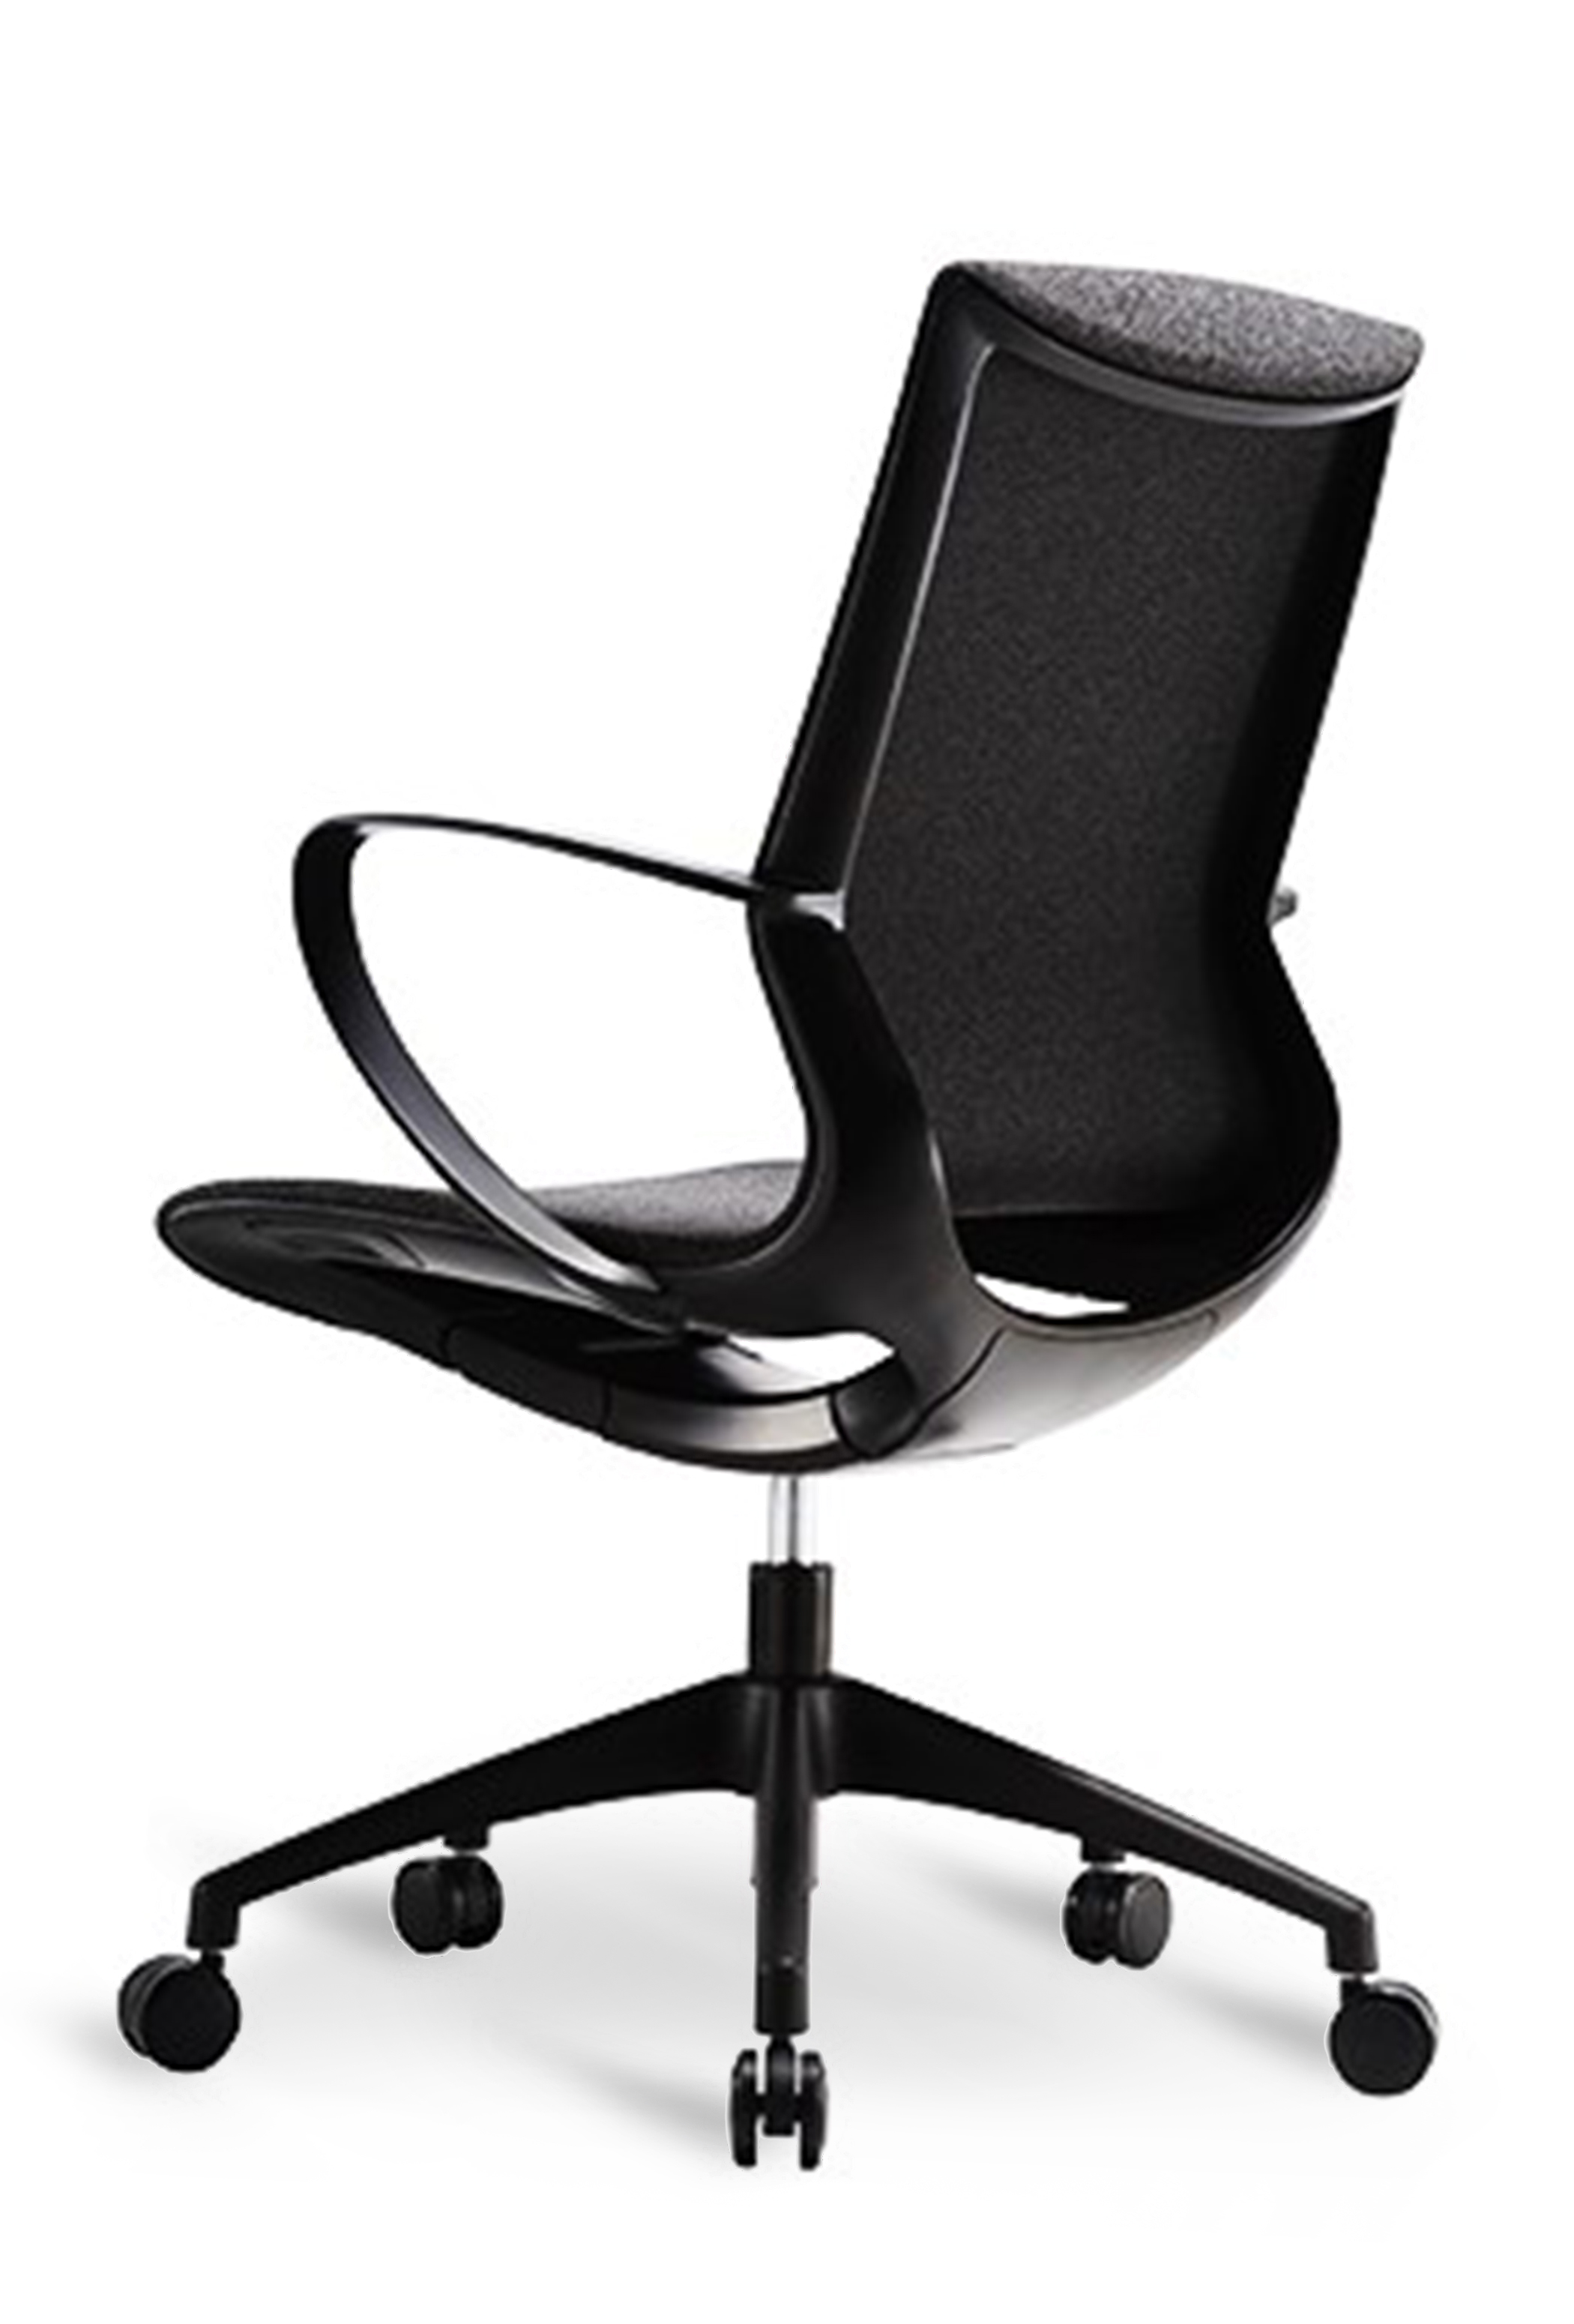 WS - L19 multipurpose chair - Black (Back angle)